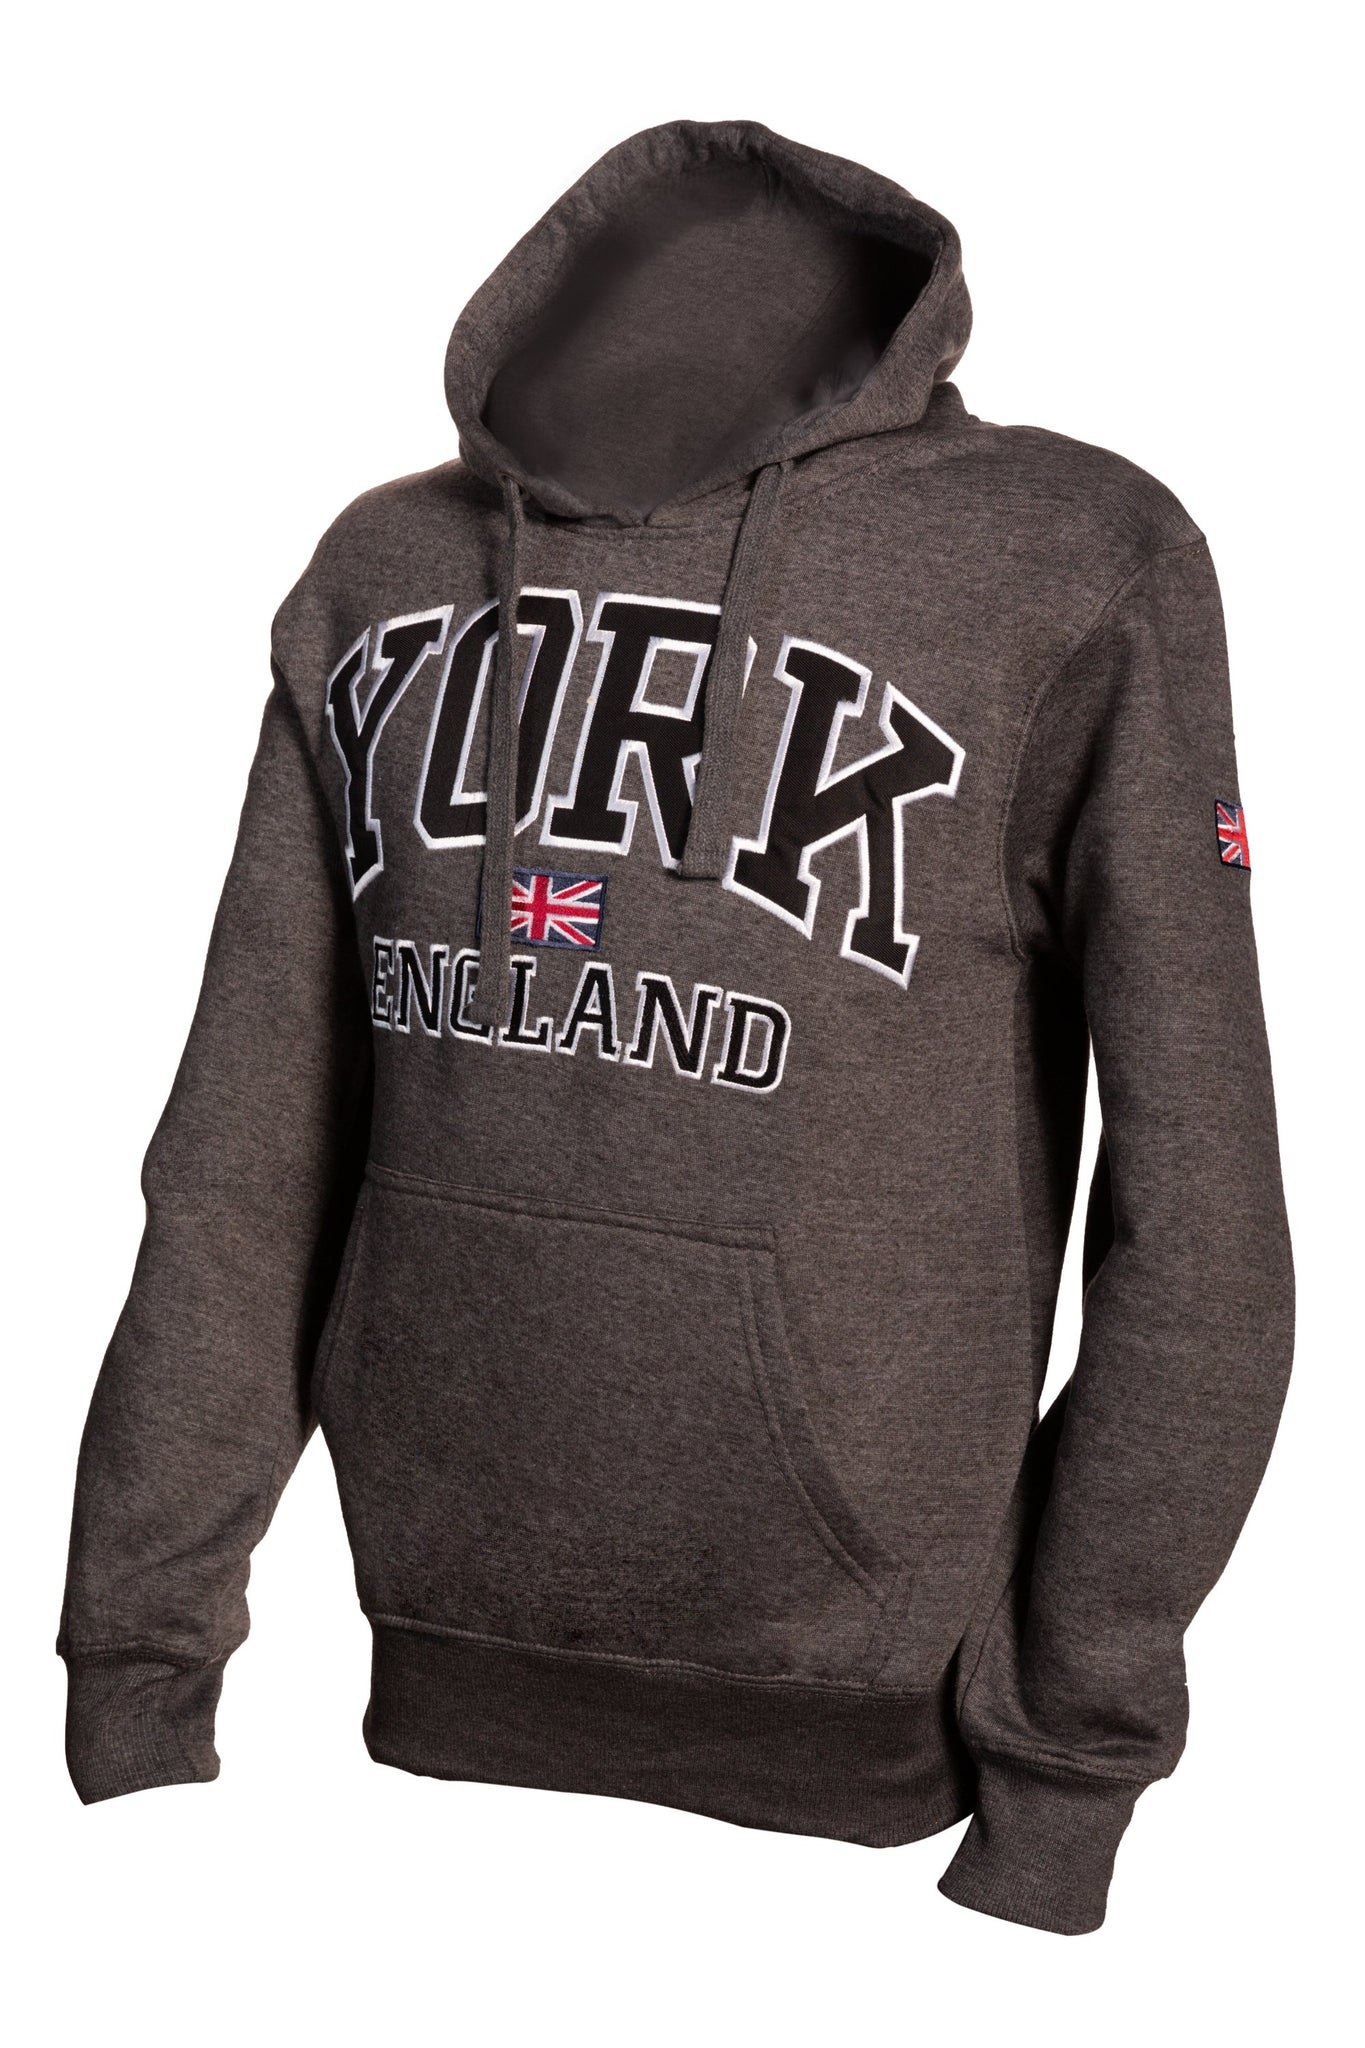 Sweatshirt York England Charcoal-Black Pullover Adult